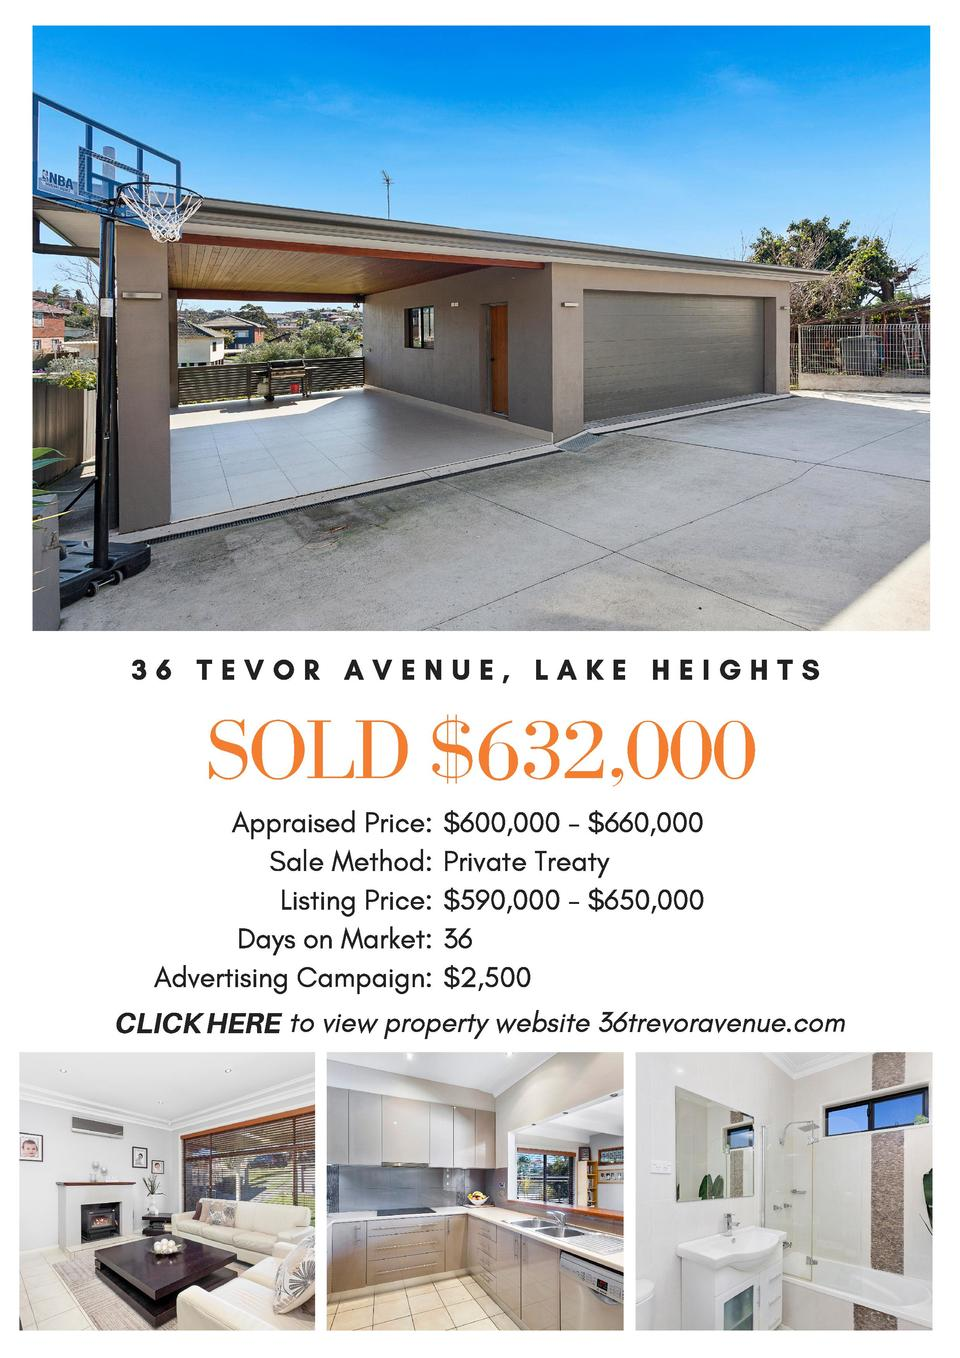 36 TEVOR AVENUE,  LAKE HEIGHTS  SOLD  632,000 Appraised Price   600,000 -  660,000 Sale Method  Private Treaty   Listing P...